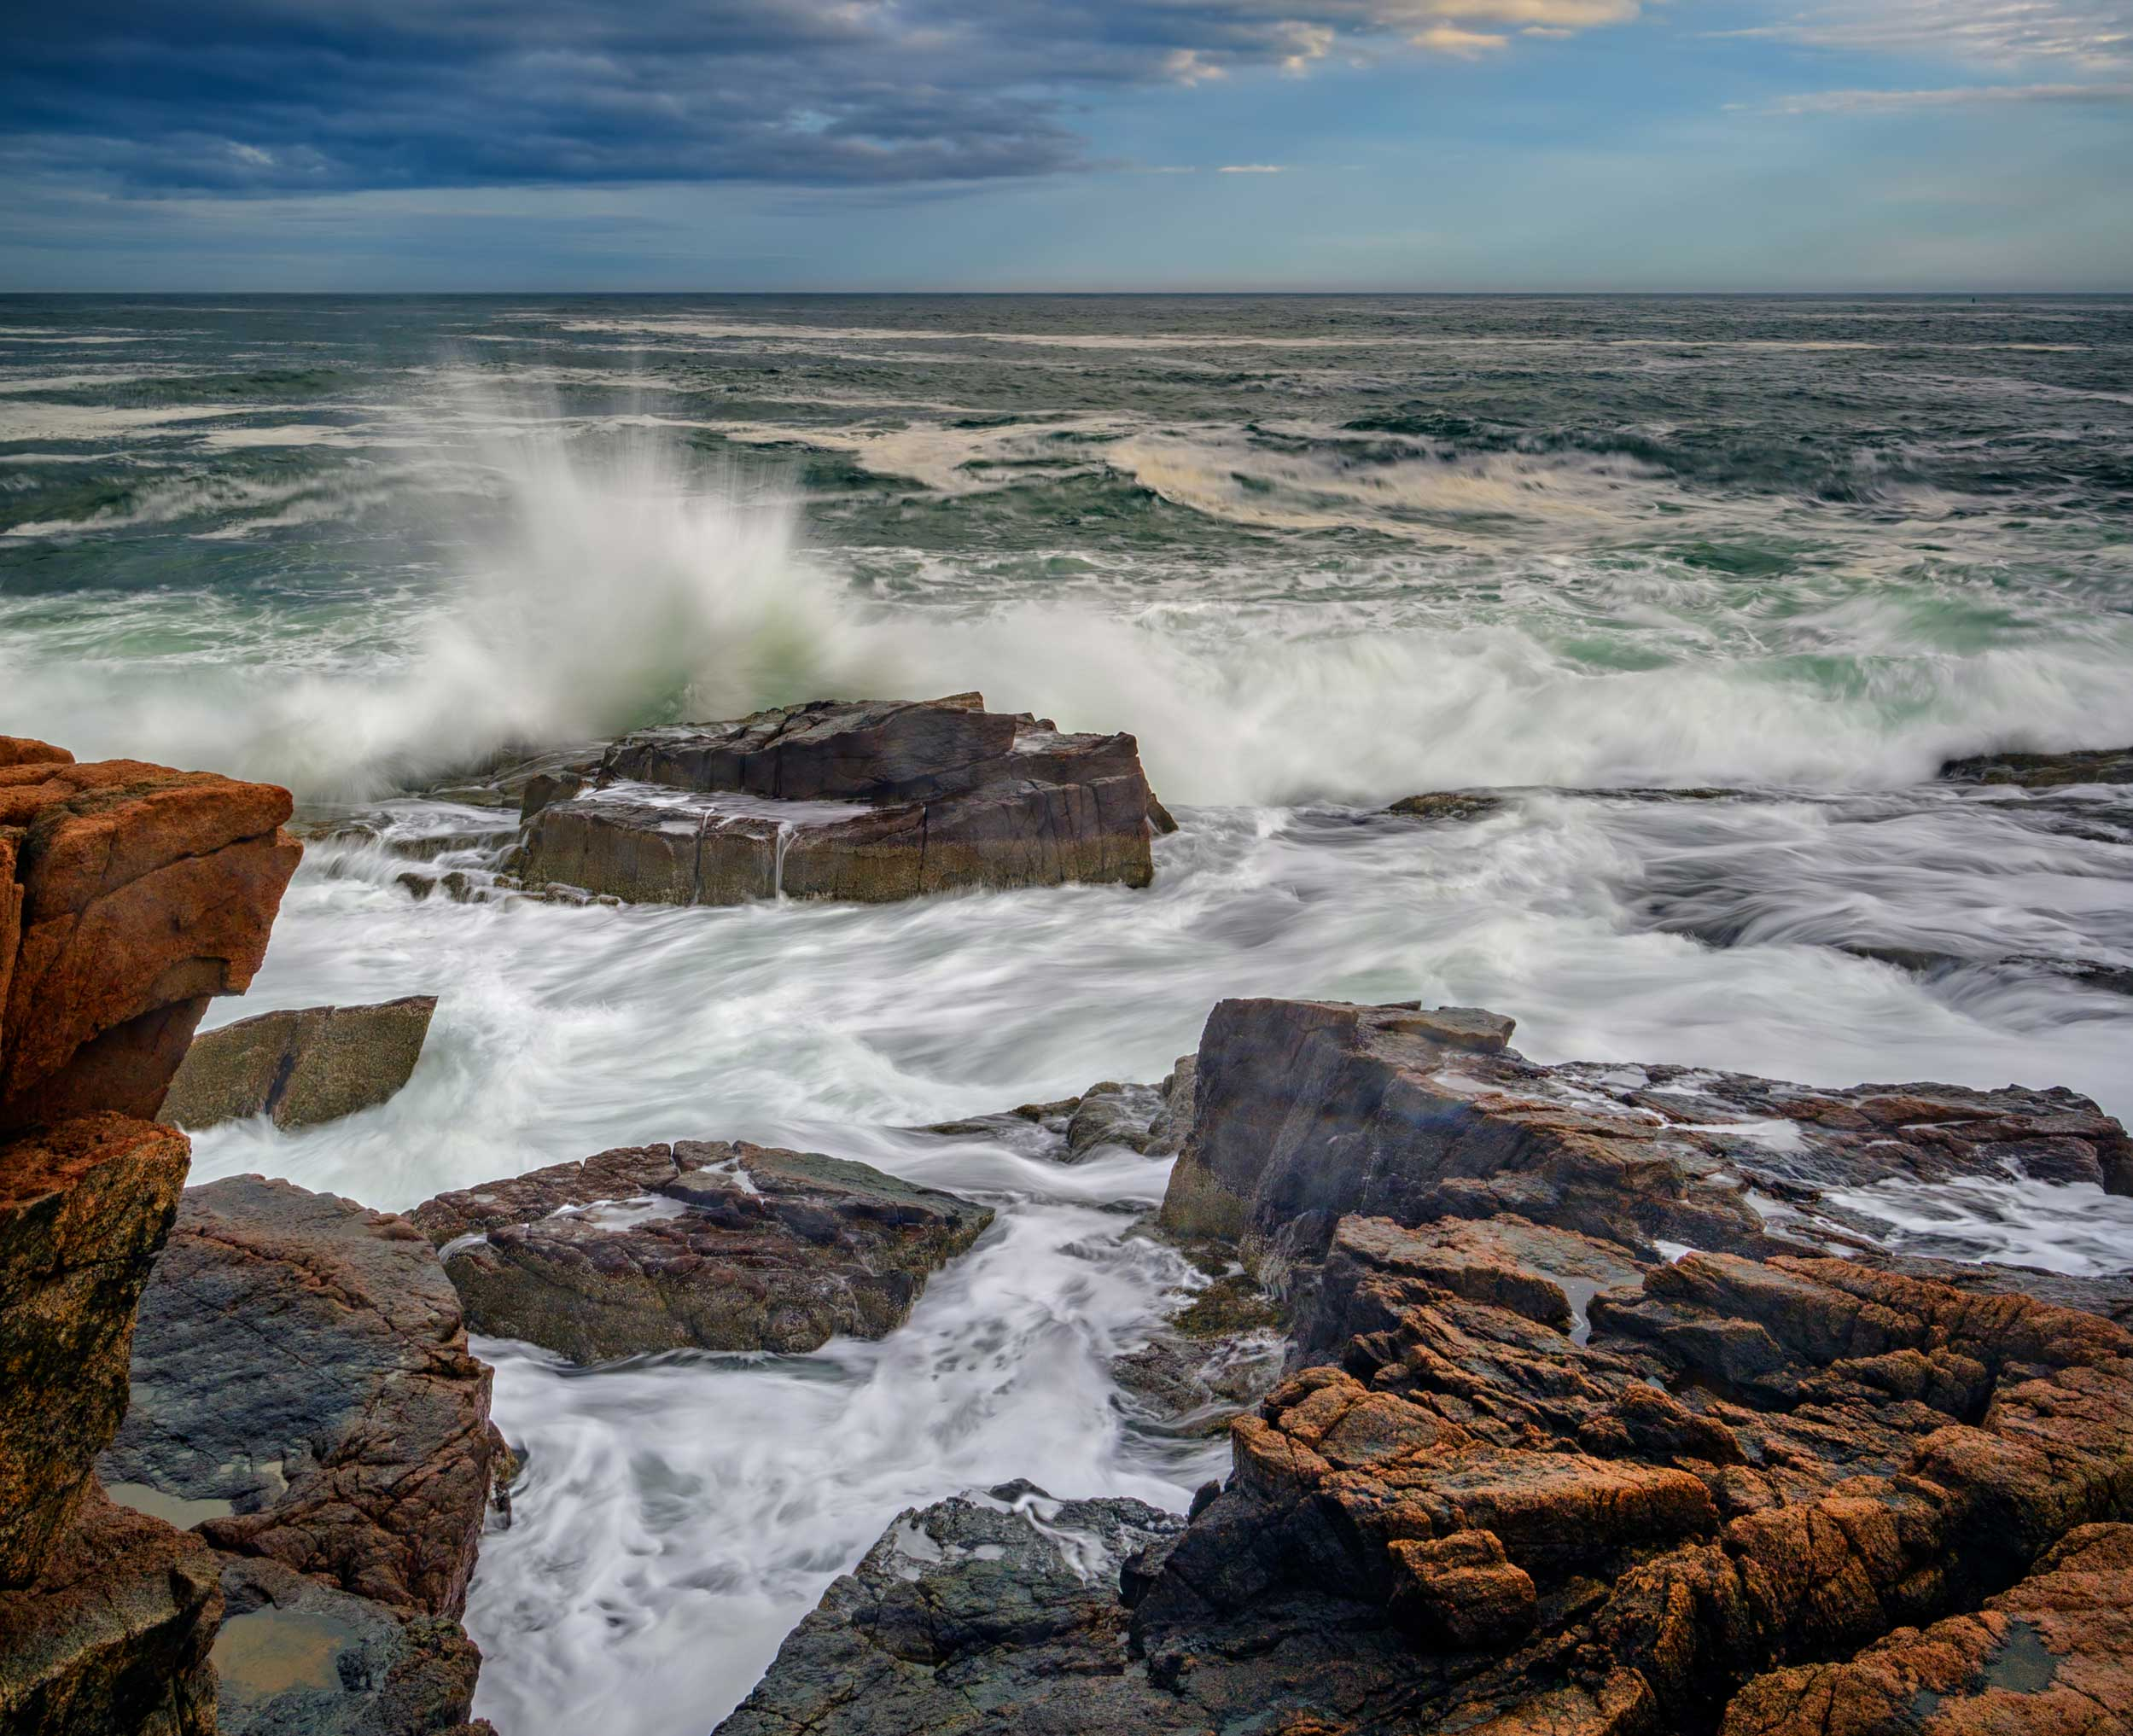 Waves pounding onto rocks at Acadia, Bar Harbor